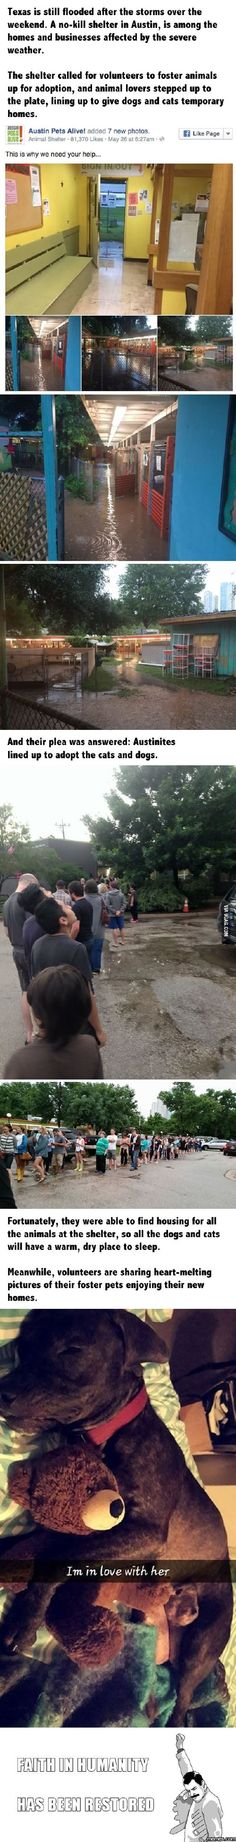 Texans line up to adopt cats and dogs after animal shelter is flooded and balloon emoji story